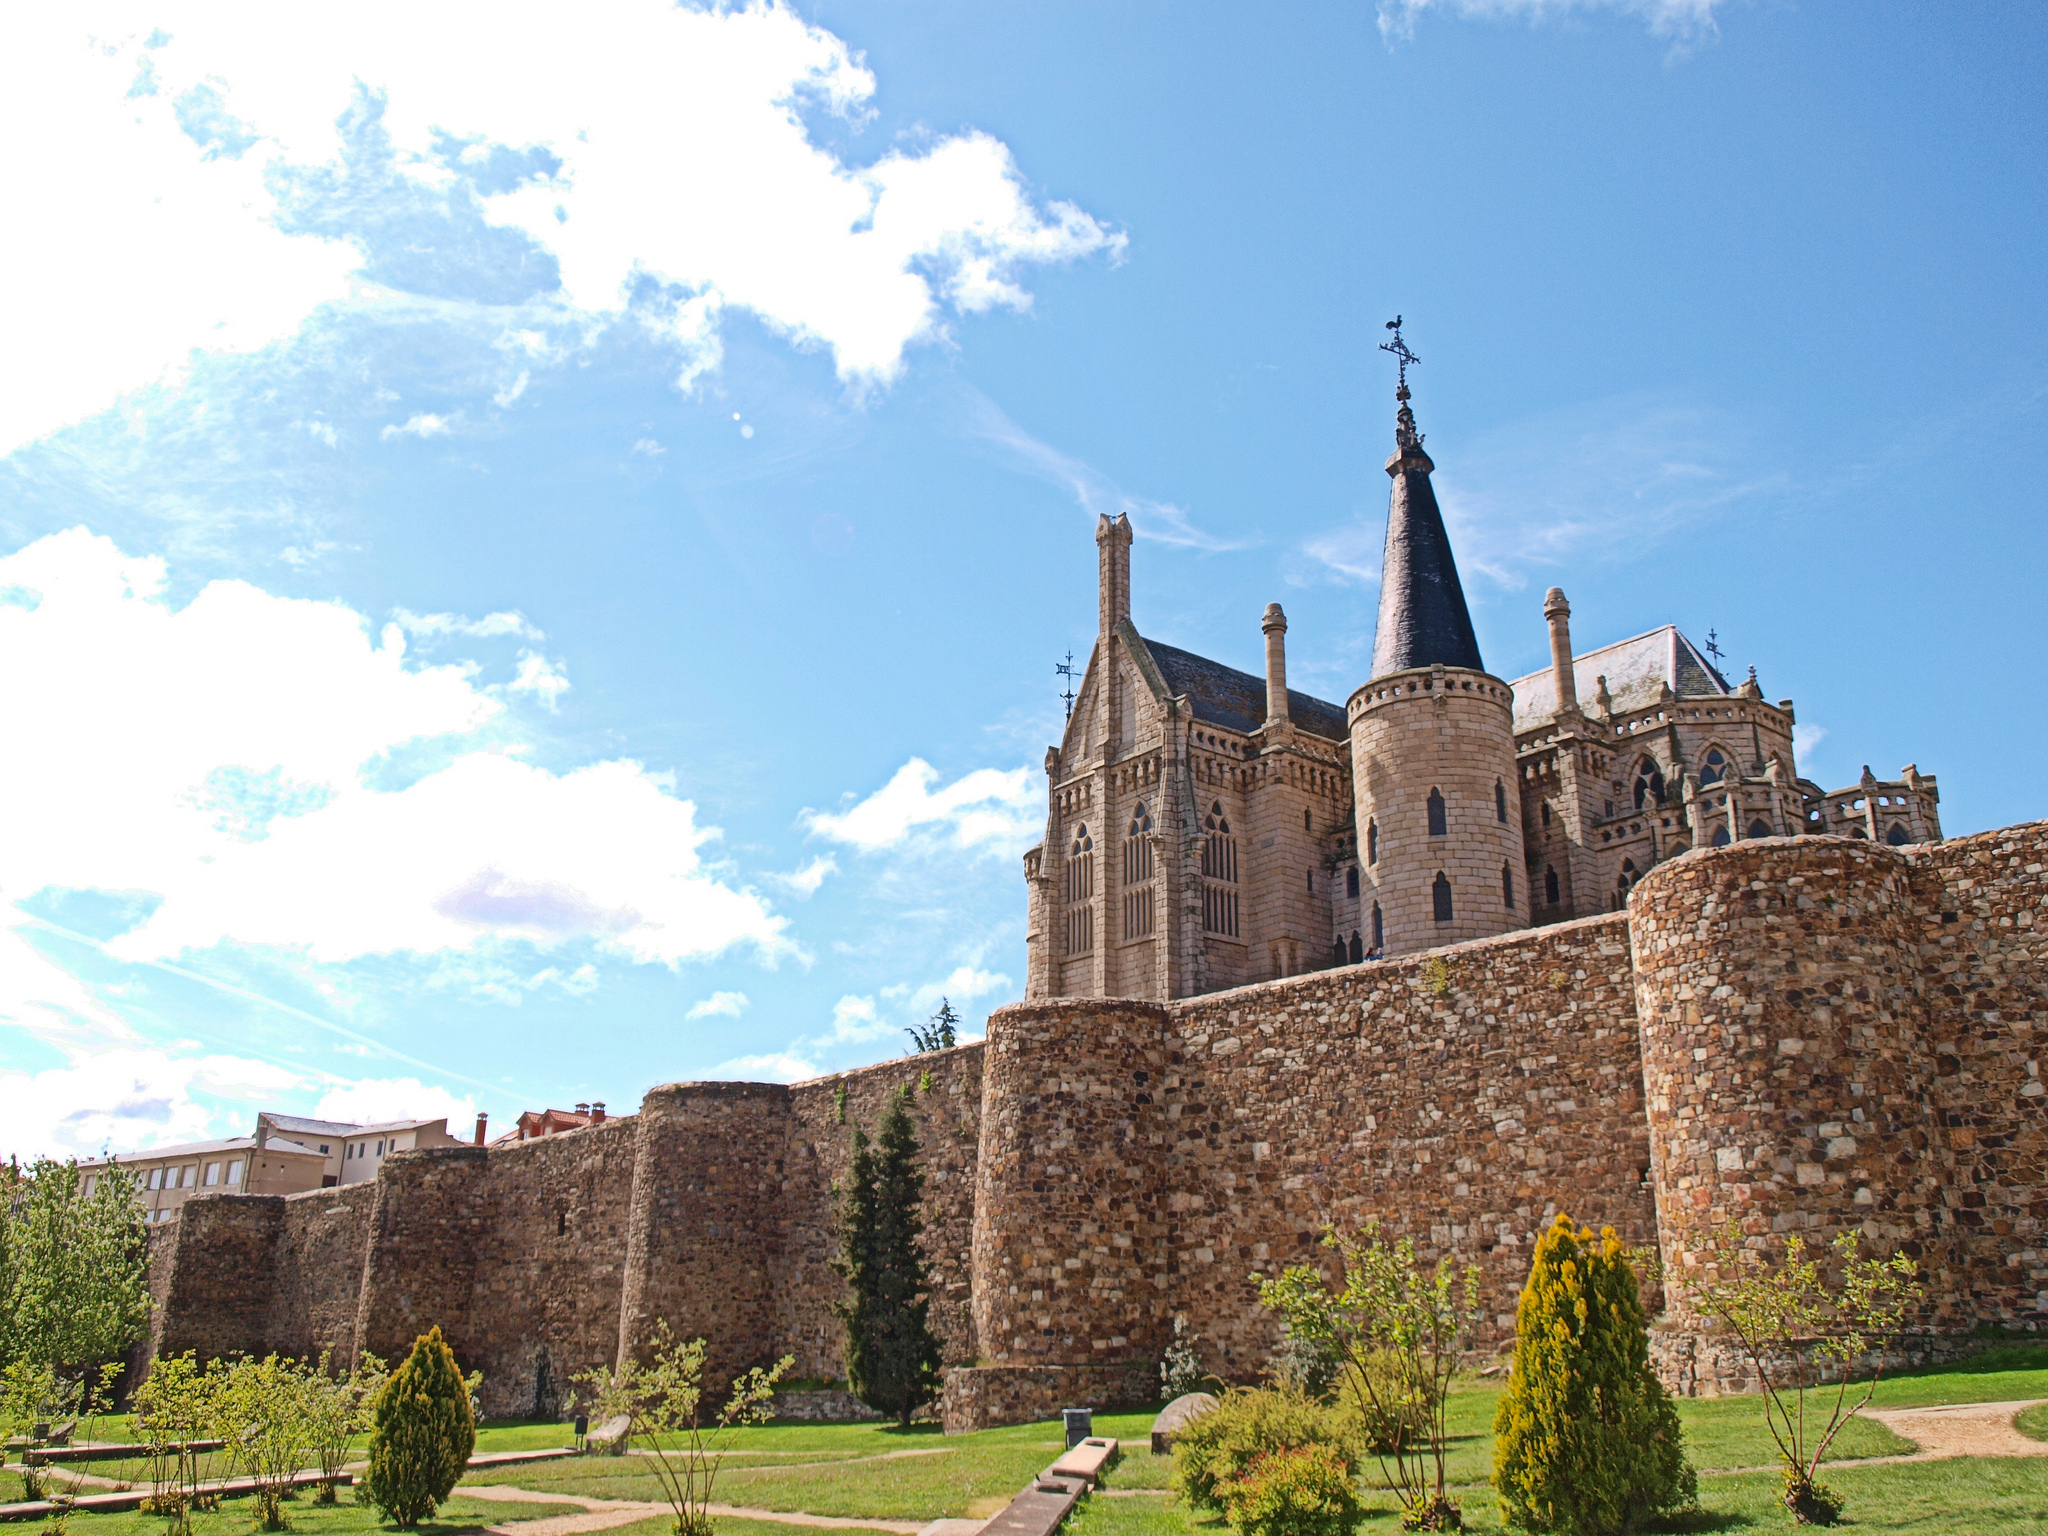 Episcopal Palace of Astorga and the Roman Wall in Astorga